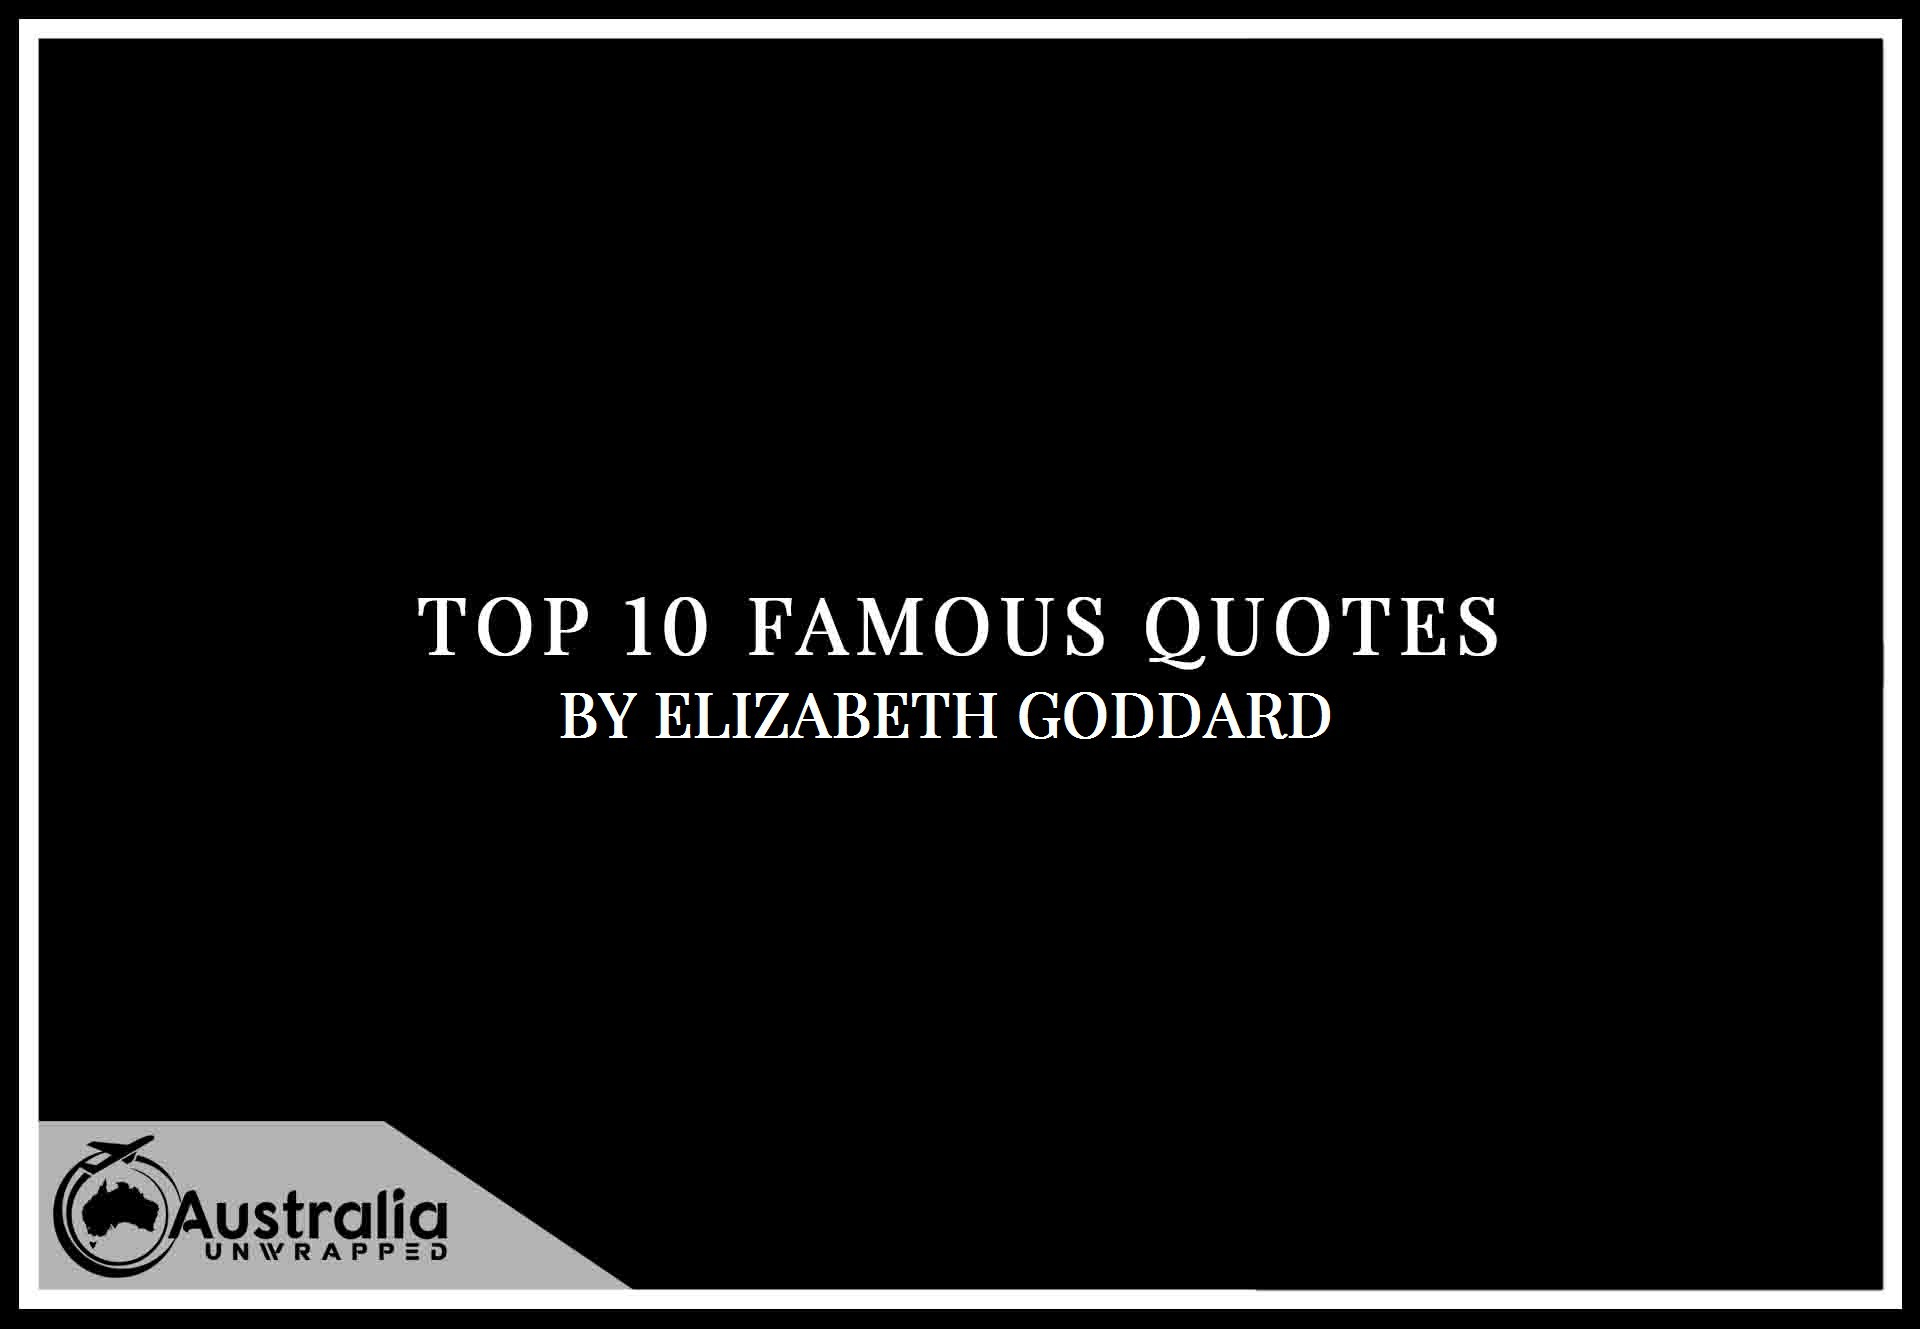 Elizabeth Goddard's Top 10 Popular and Famous Quotes